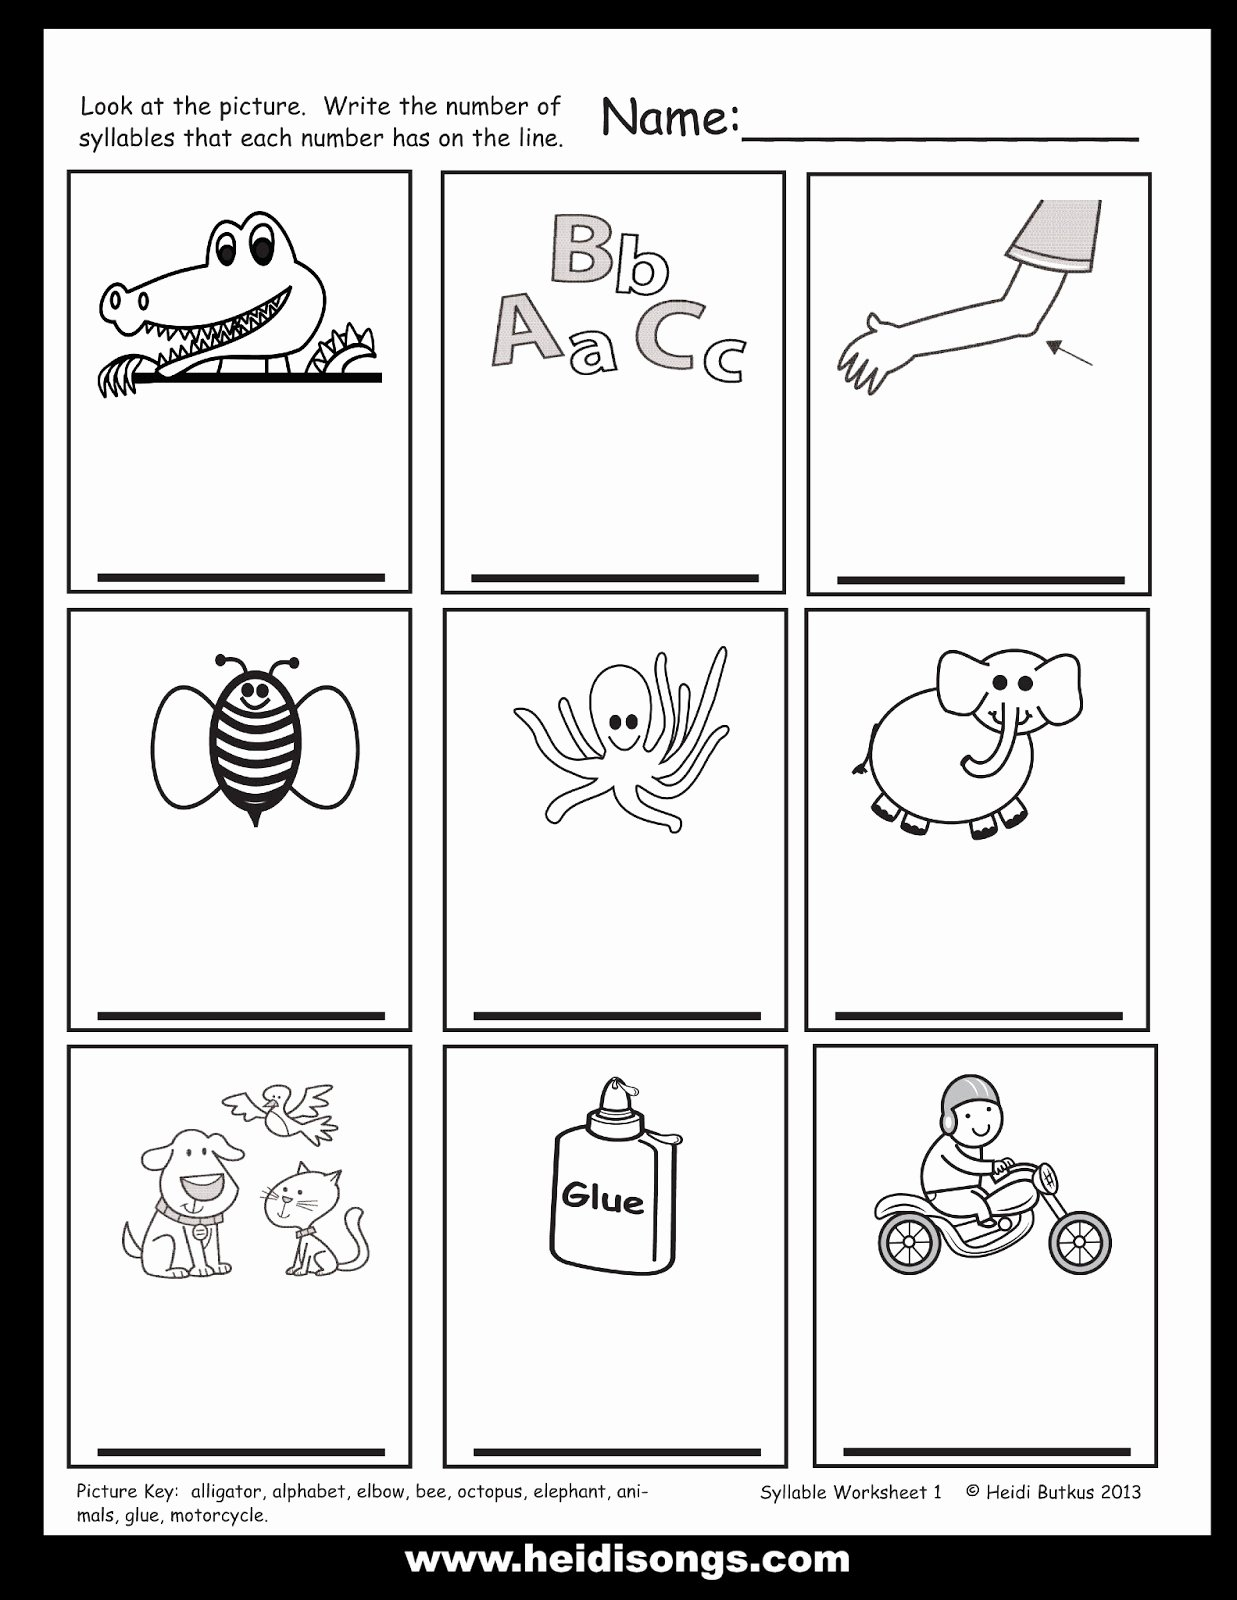 Syllables Worksheet for Kindergarten Beautiful How to Teach Syllable Counting and A Freebie